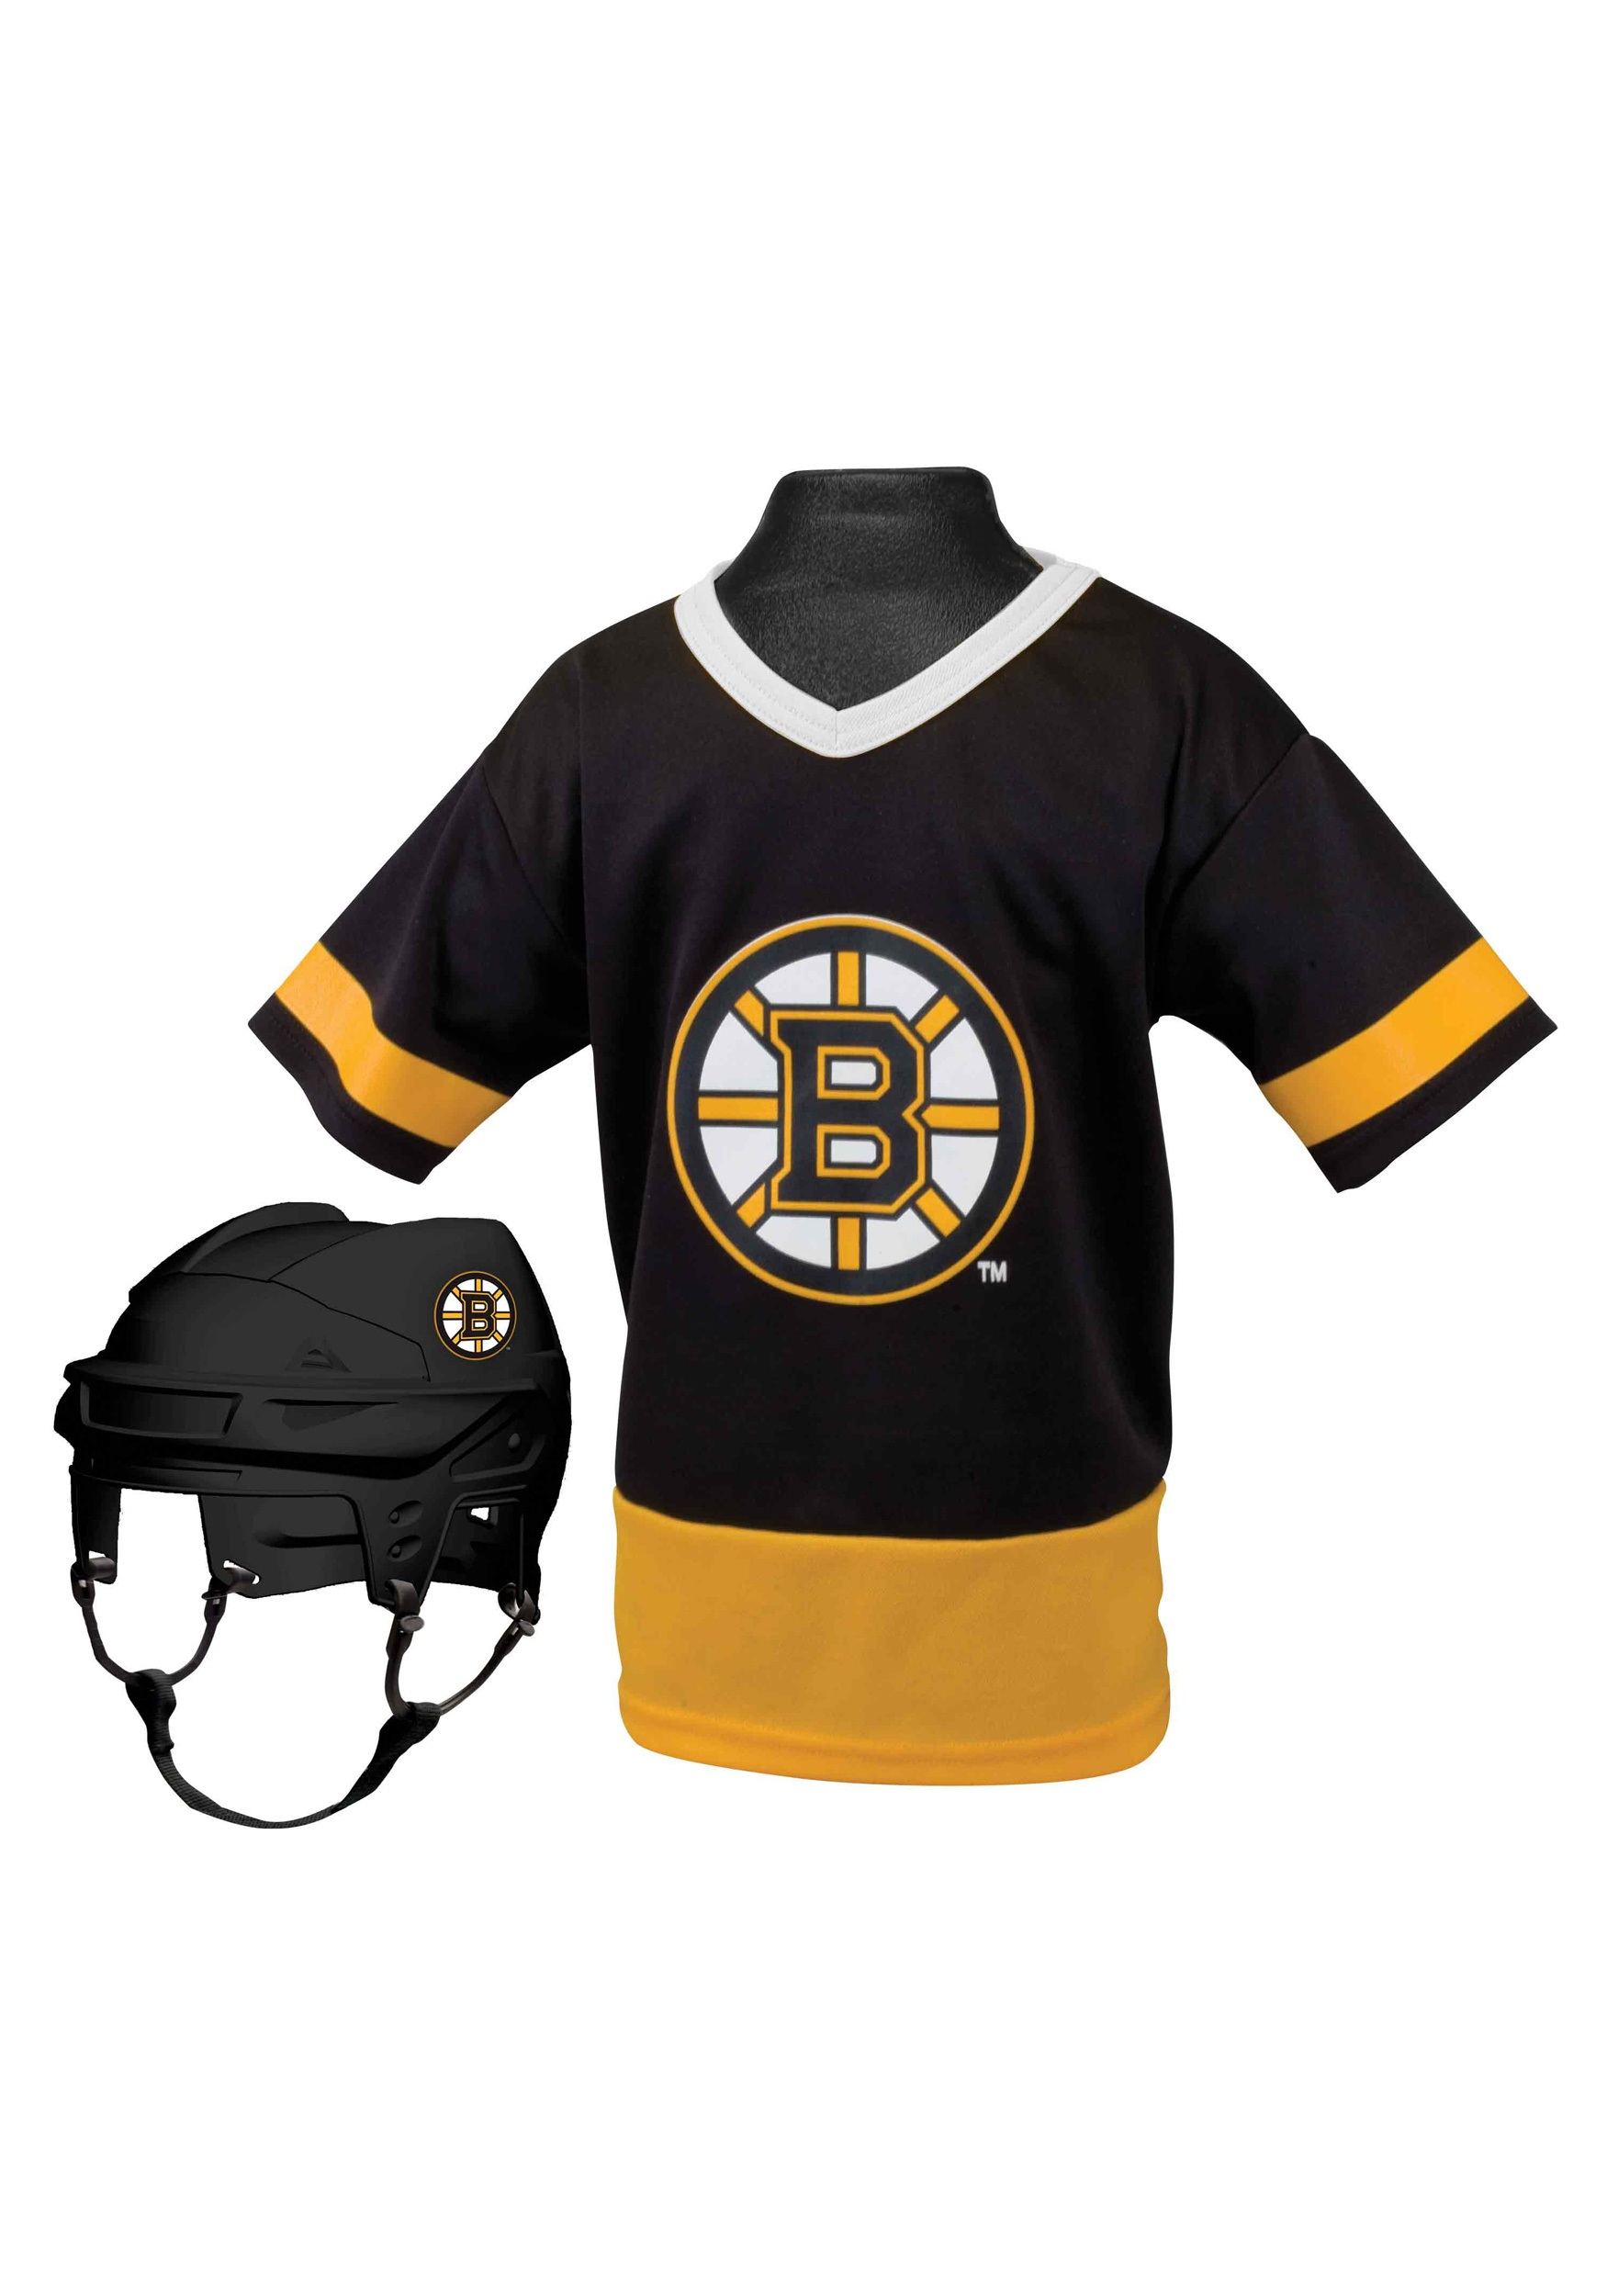 Kids NHL Boston Bruins Uniform Costume Set 4c2f546a7